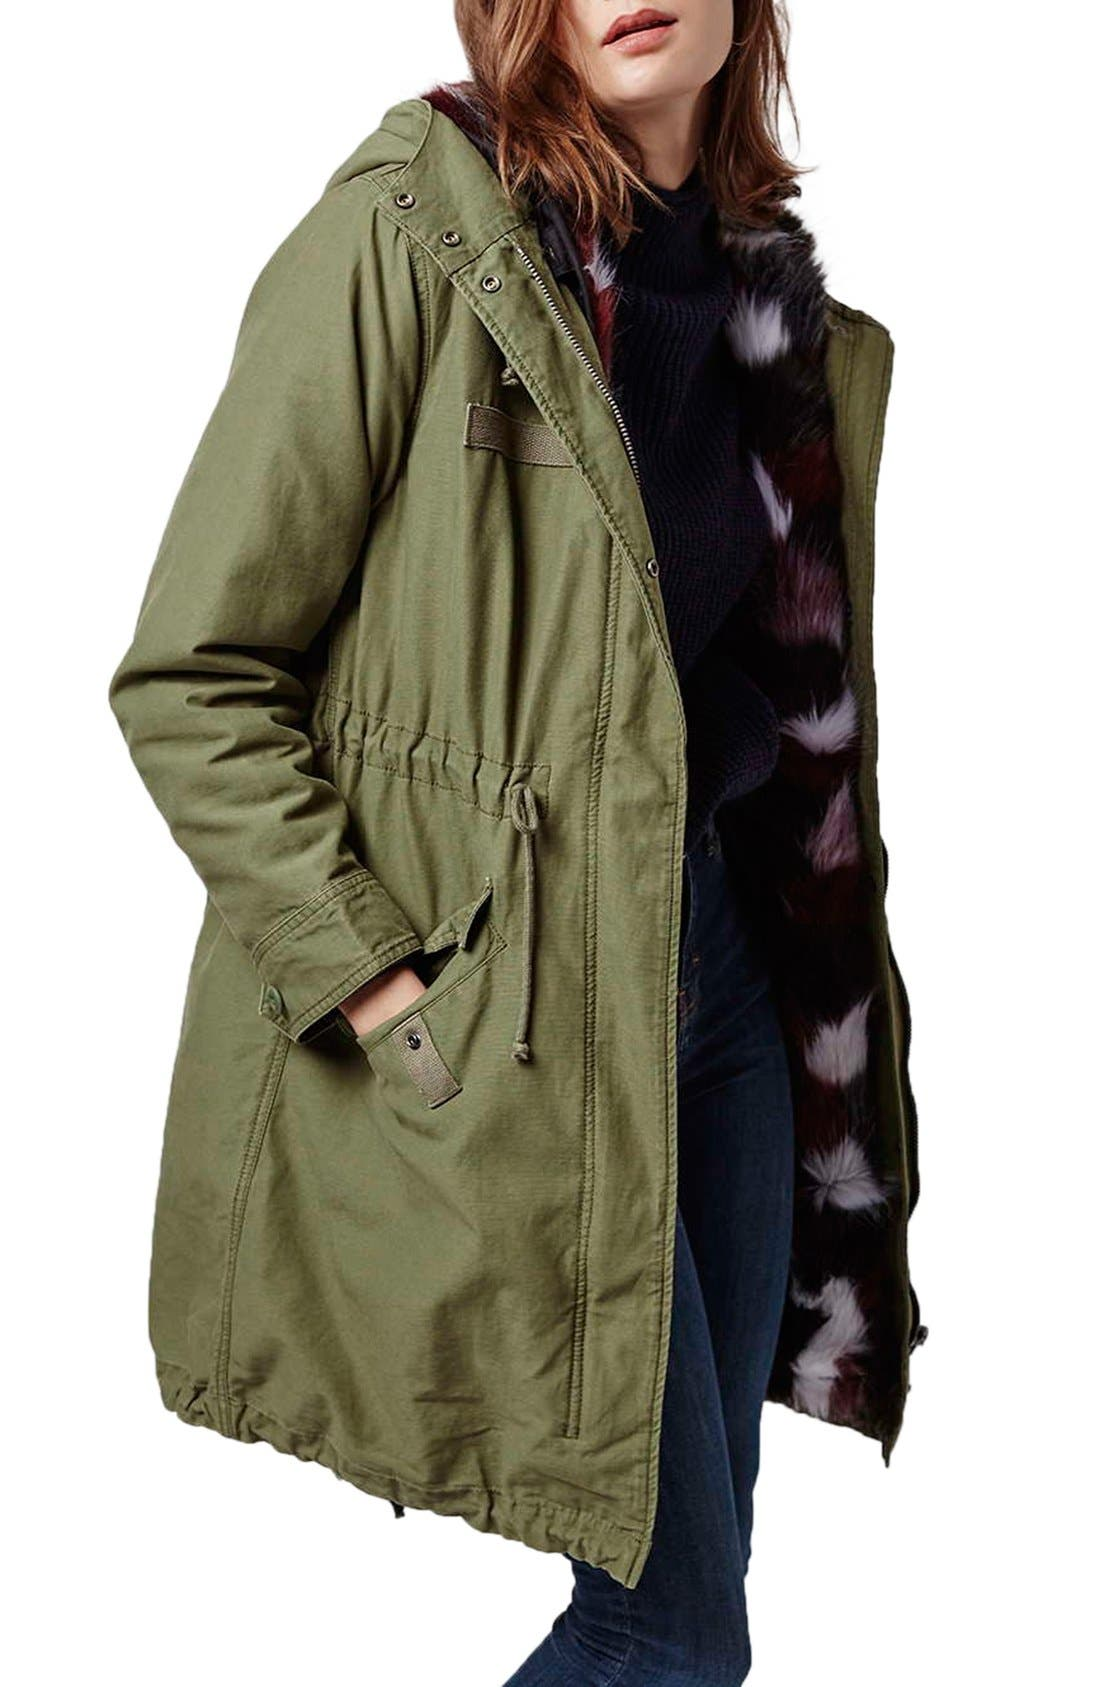 Alternate Image 1 Selected - Topshop Patchwork Faux Fur Lined Parka